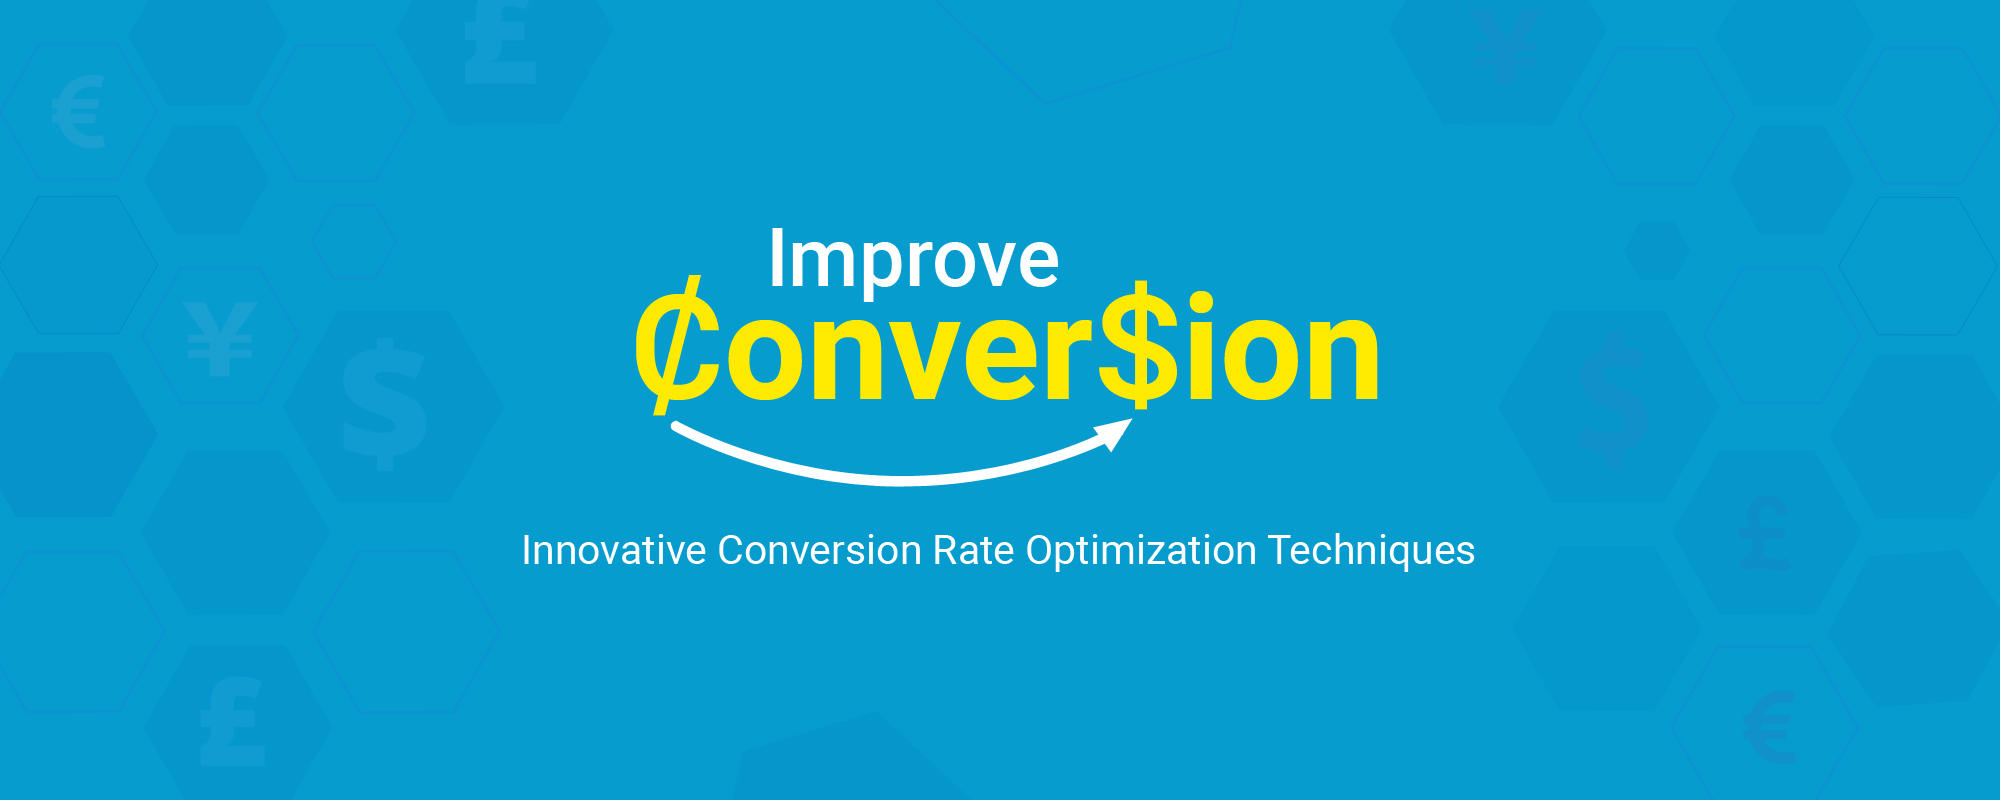 5 Conversion Rate Optimization Hacks You Probably Didn't Know About